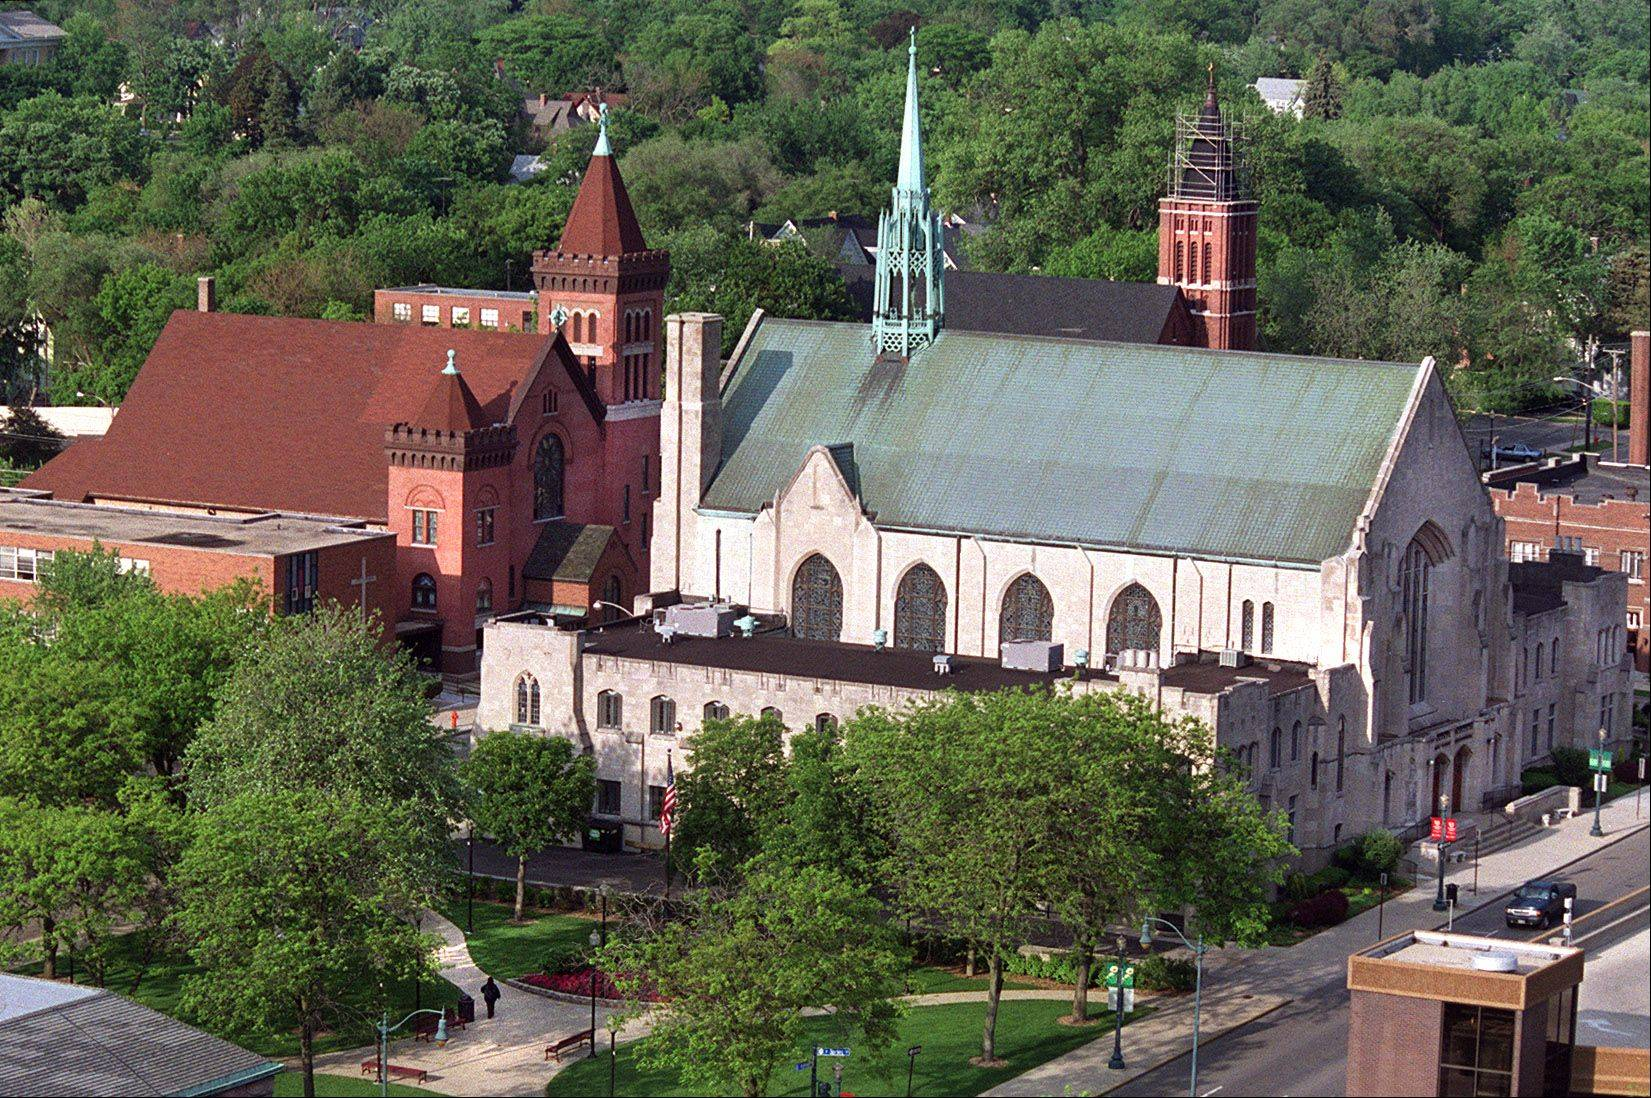 Atop Holy Hill, First United Methodist Church (front right) is celebrating its 175th anniversary this year with a variety of programs.